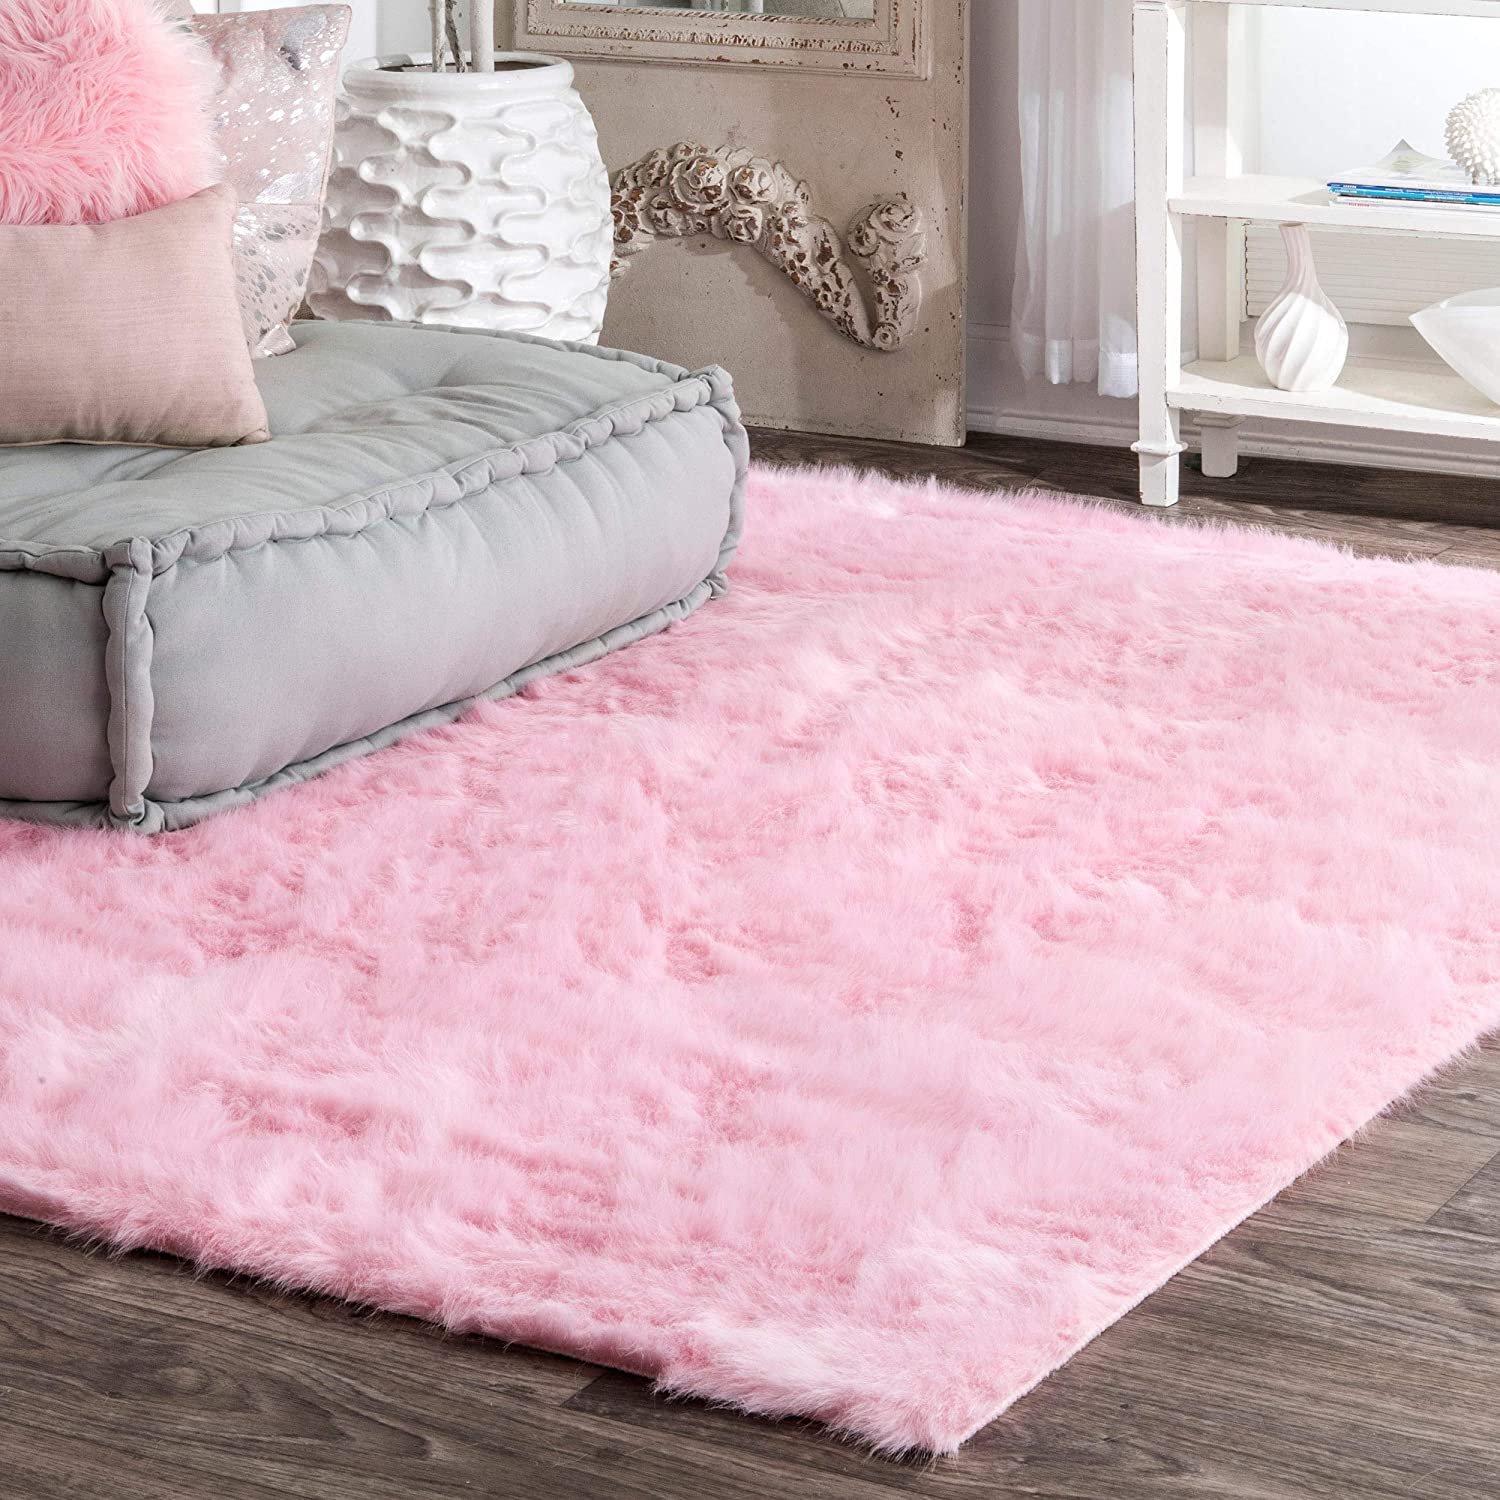 NuLOOM Faux Sheepskin Cloud Solid Soft and Plush Shag Round Area Rug, 5', Ivory-P